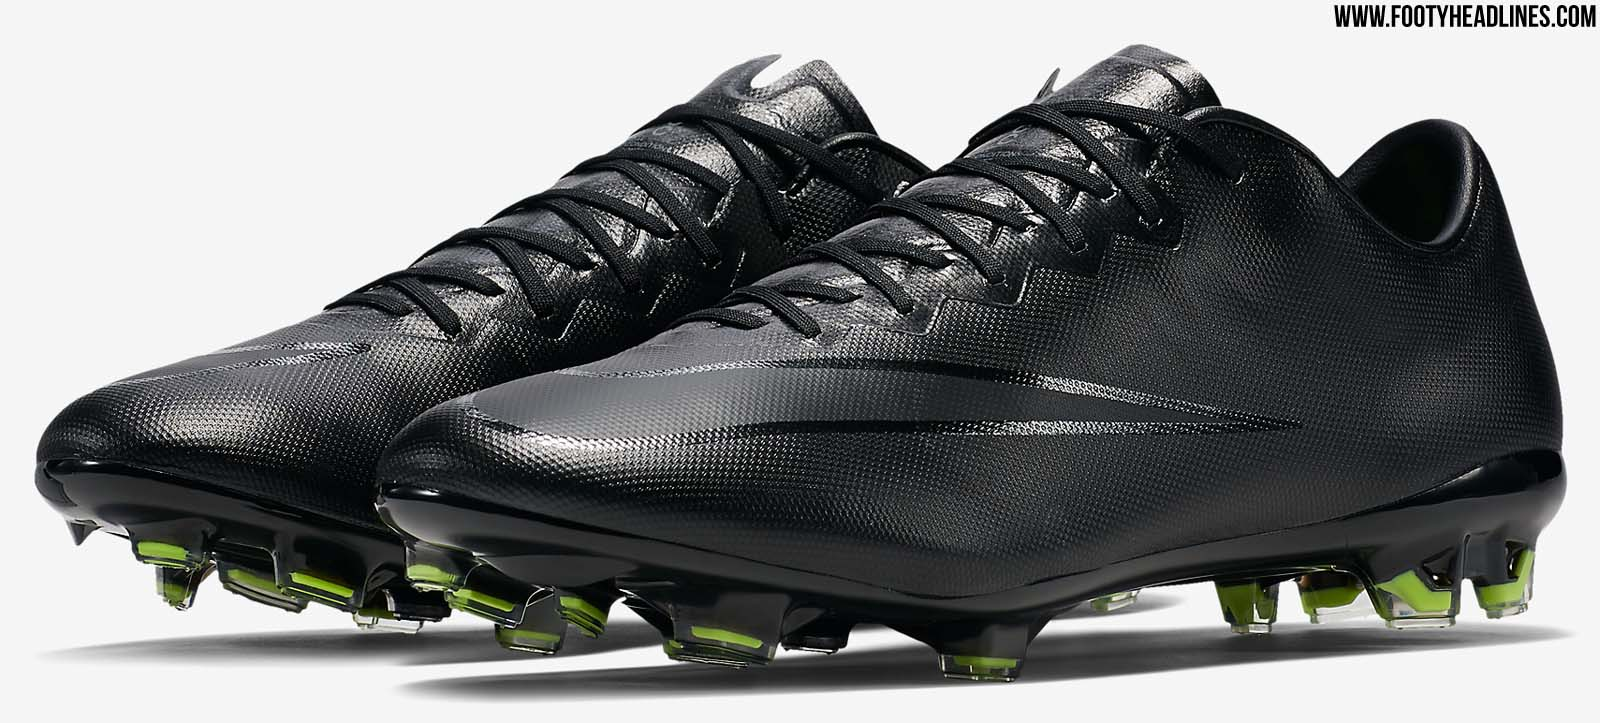 blackout nike mercurial vapor x academy pack boots. Black Bedroom Furniture Sets. Home Design Ideas